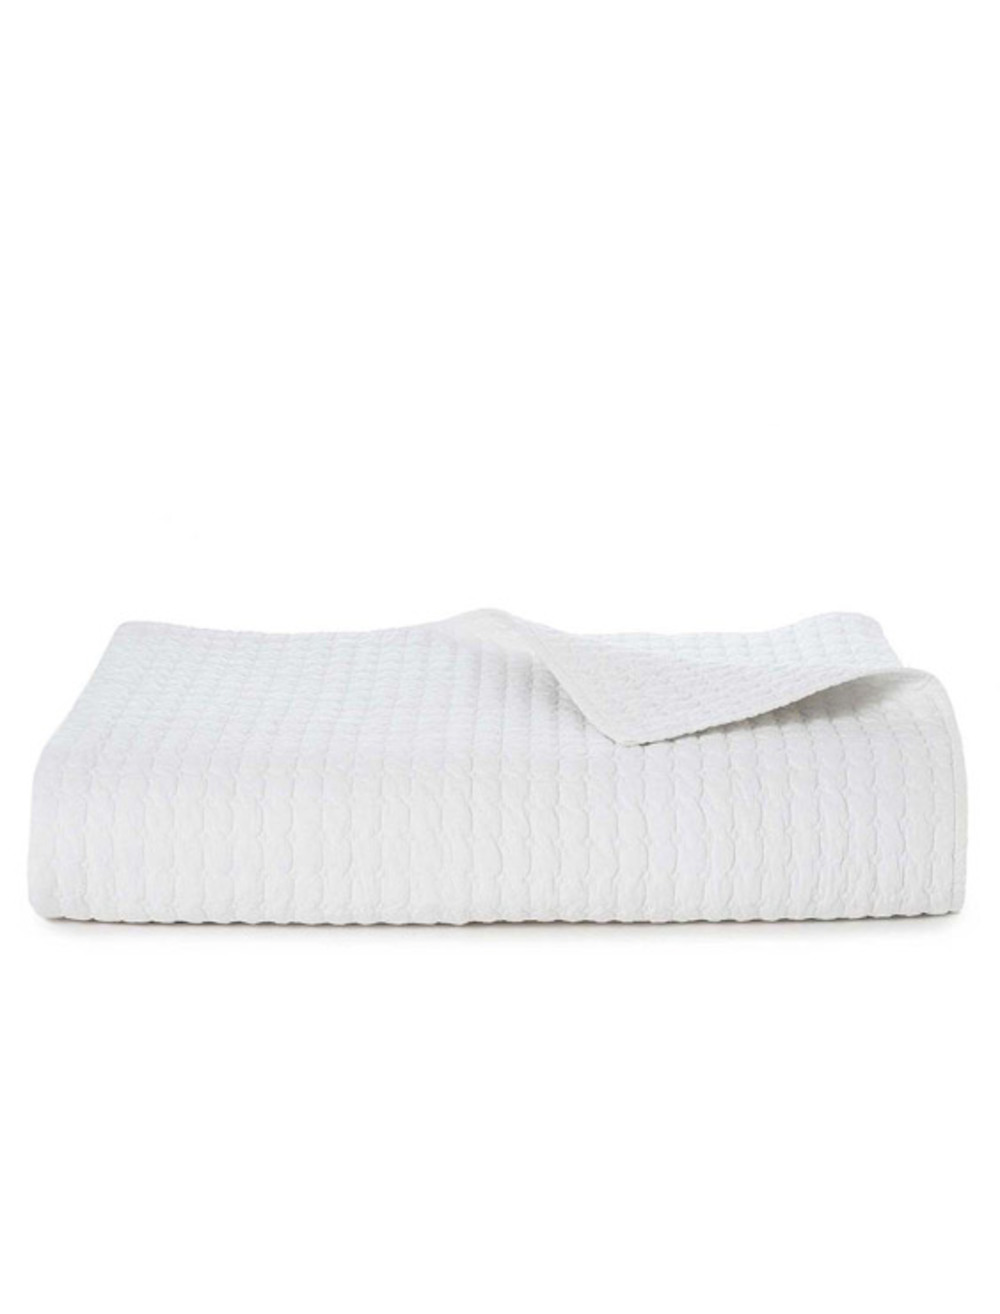 Amity Imports - Urban King Quilt in White